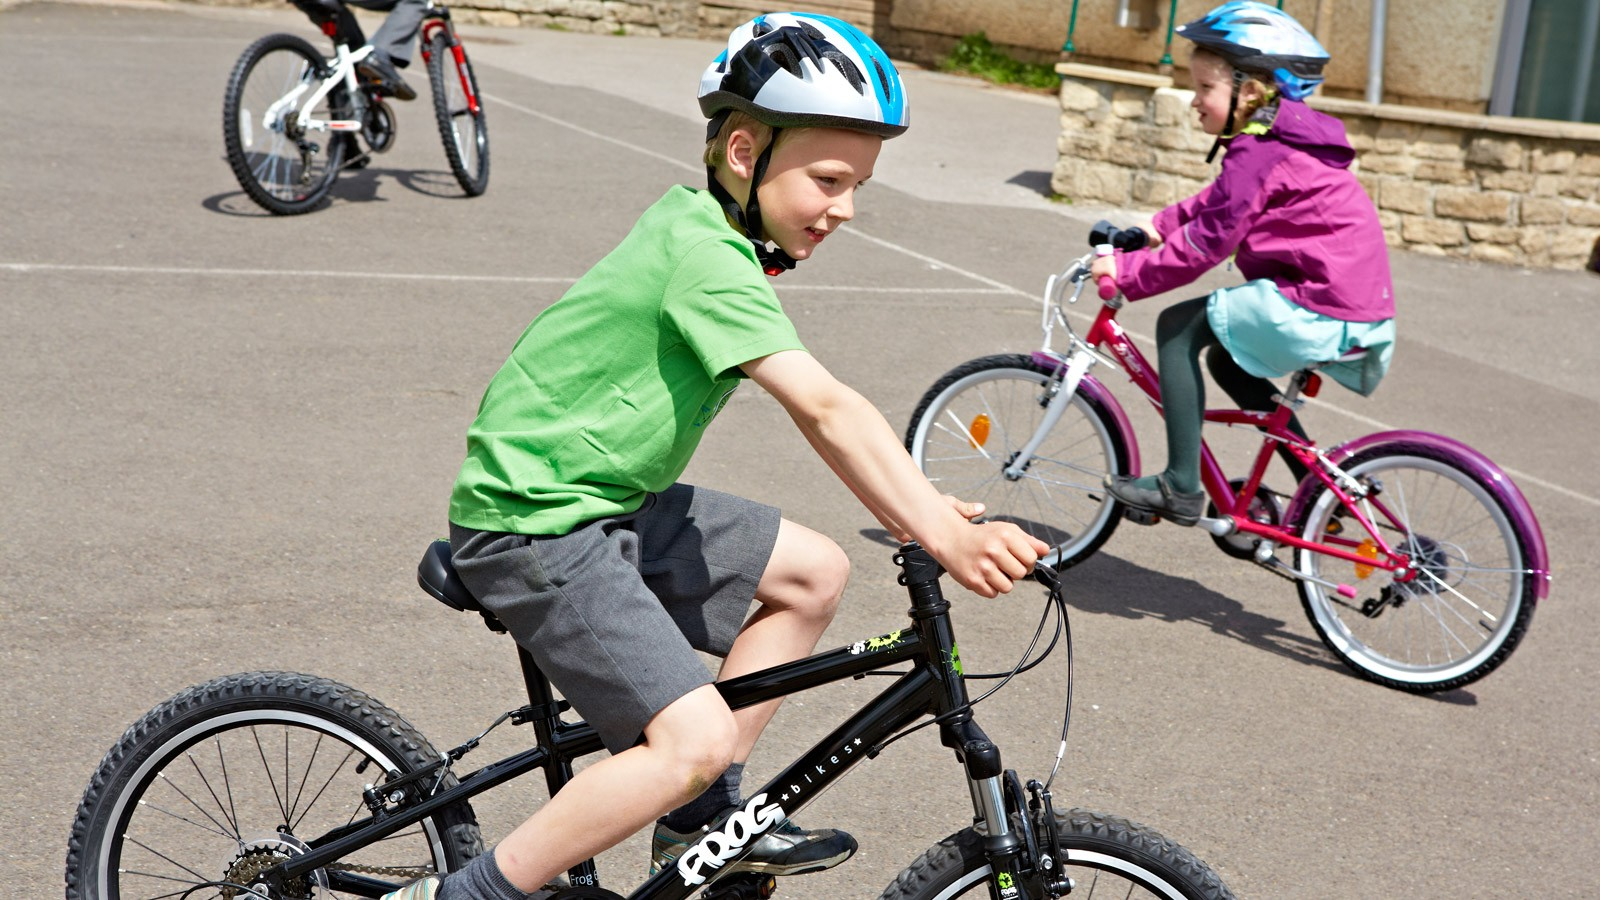 Most parents don't give their child's bike a yearly MOT